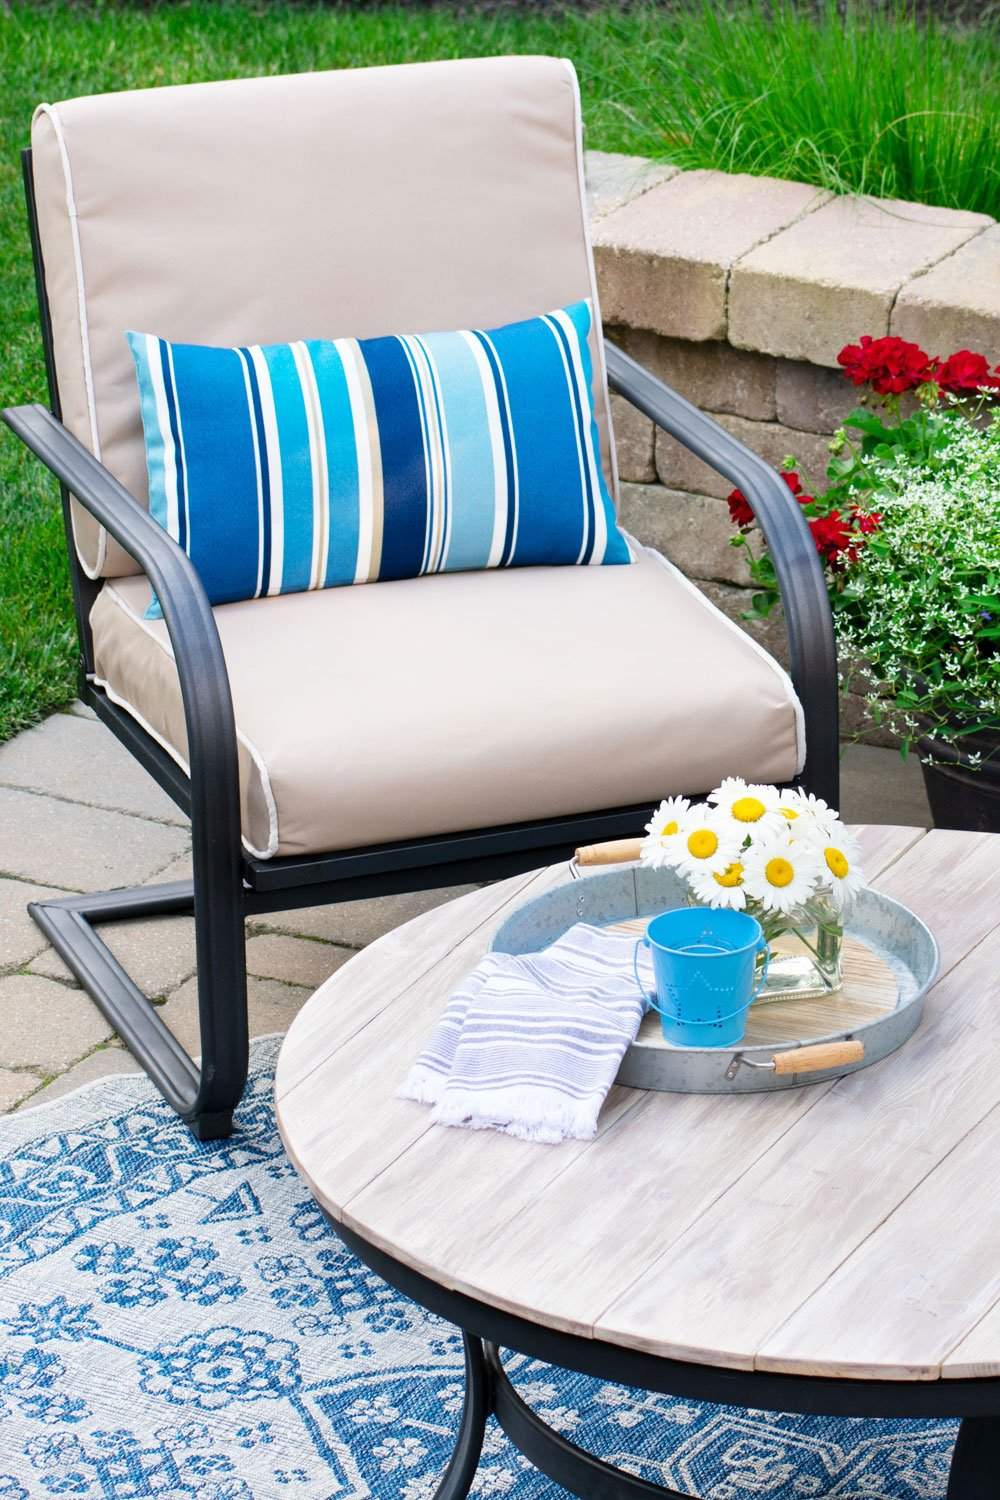 Outdoor Cushions For Your Deck Or Patio